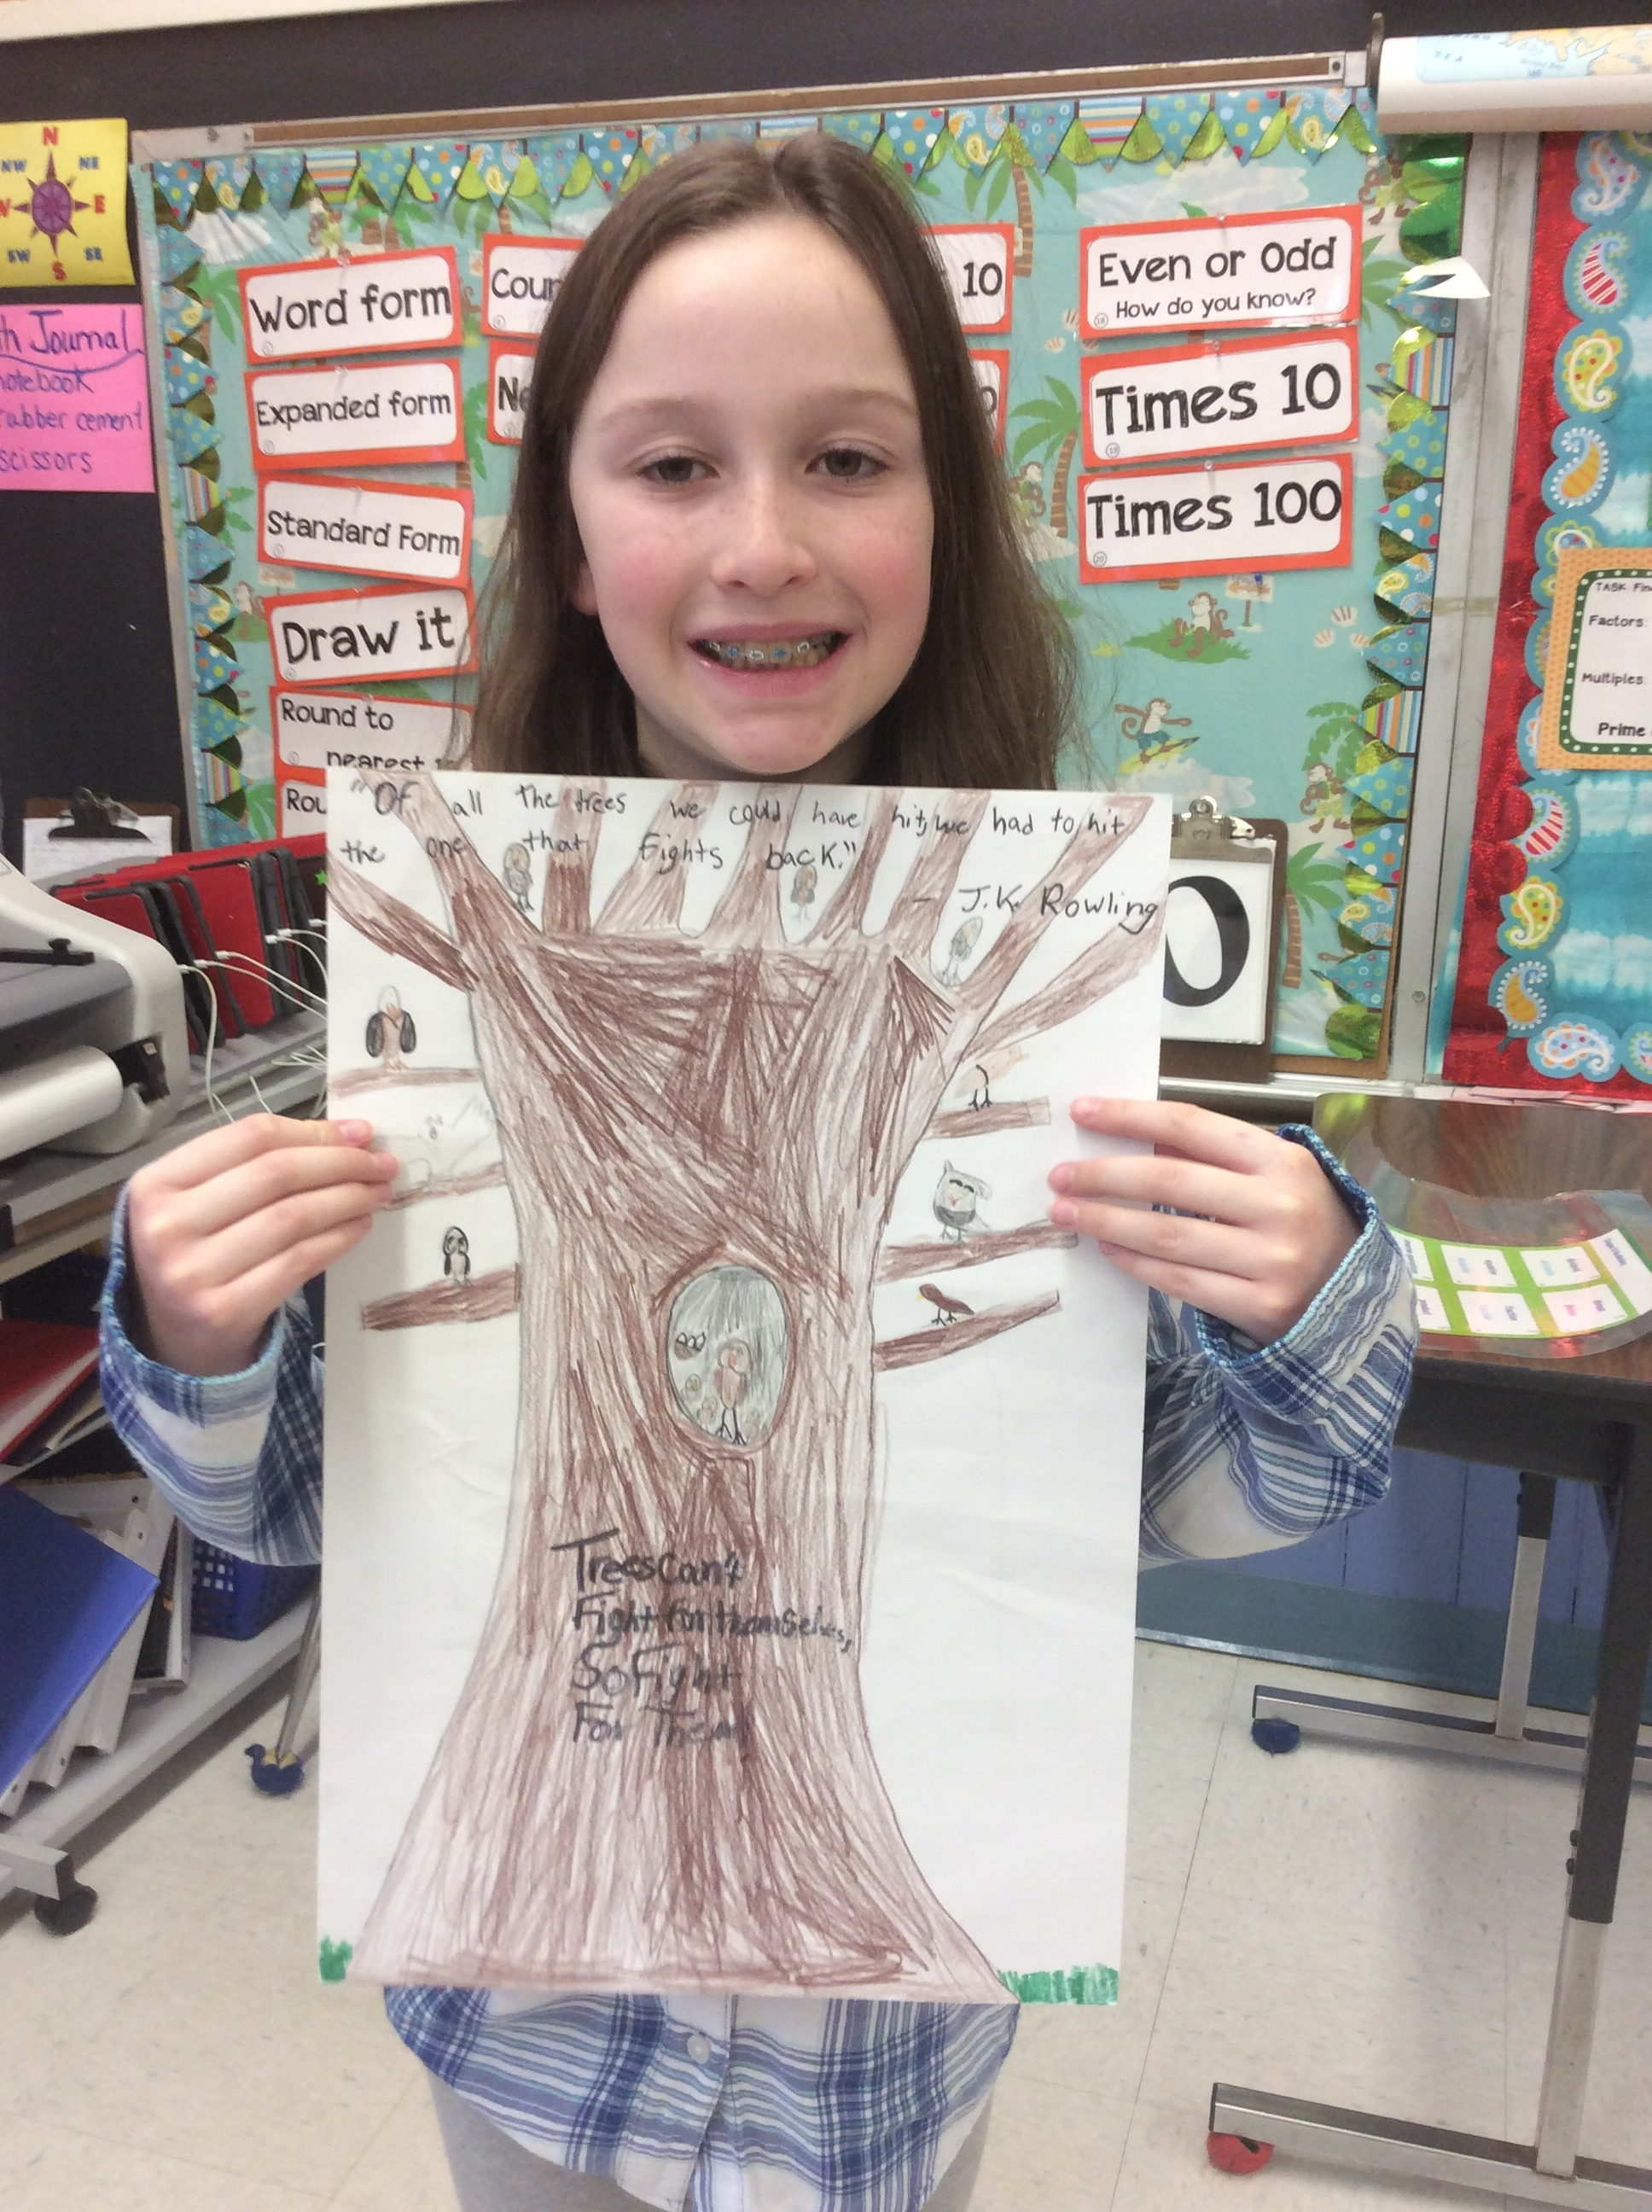 Caroline's poster was influenced by her love of the Harry Potter series.